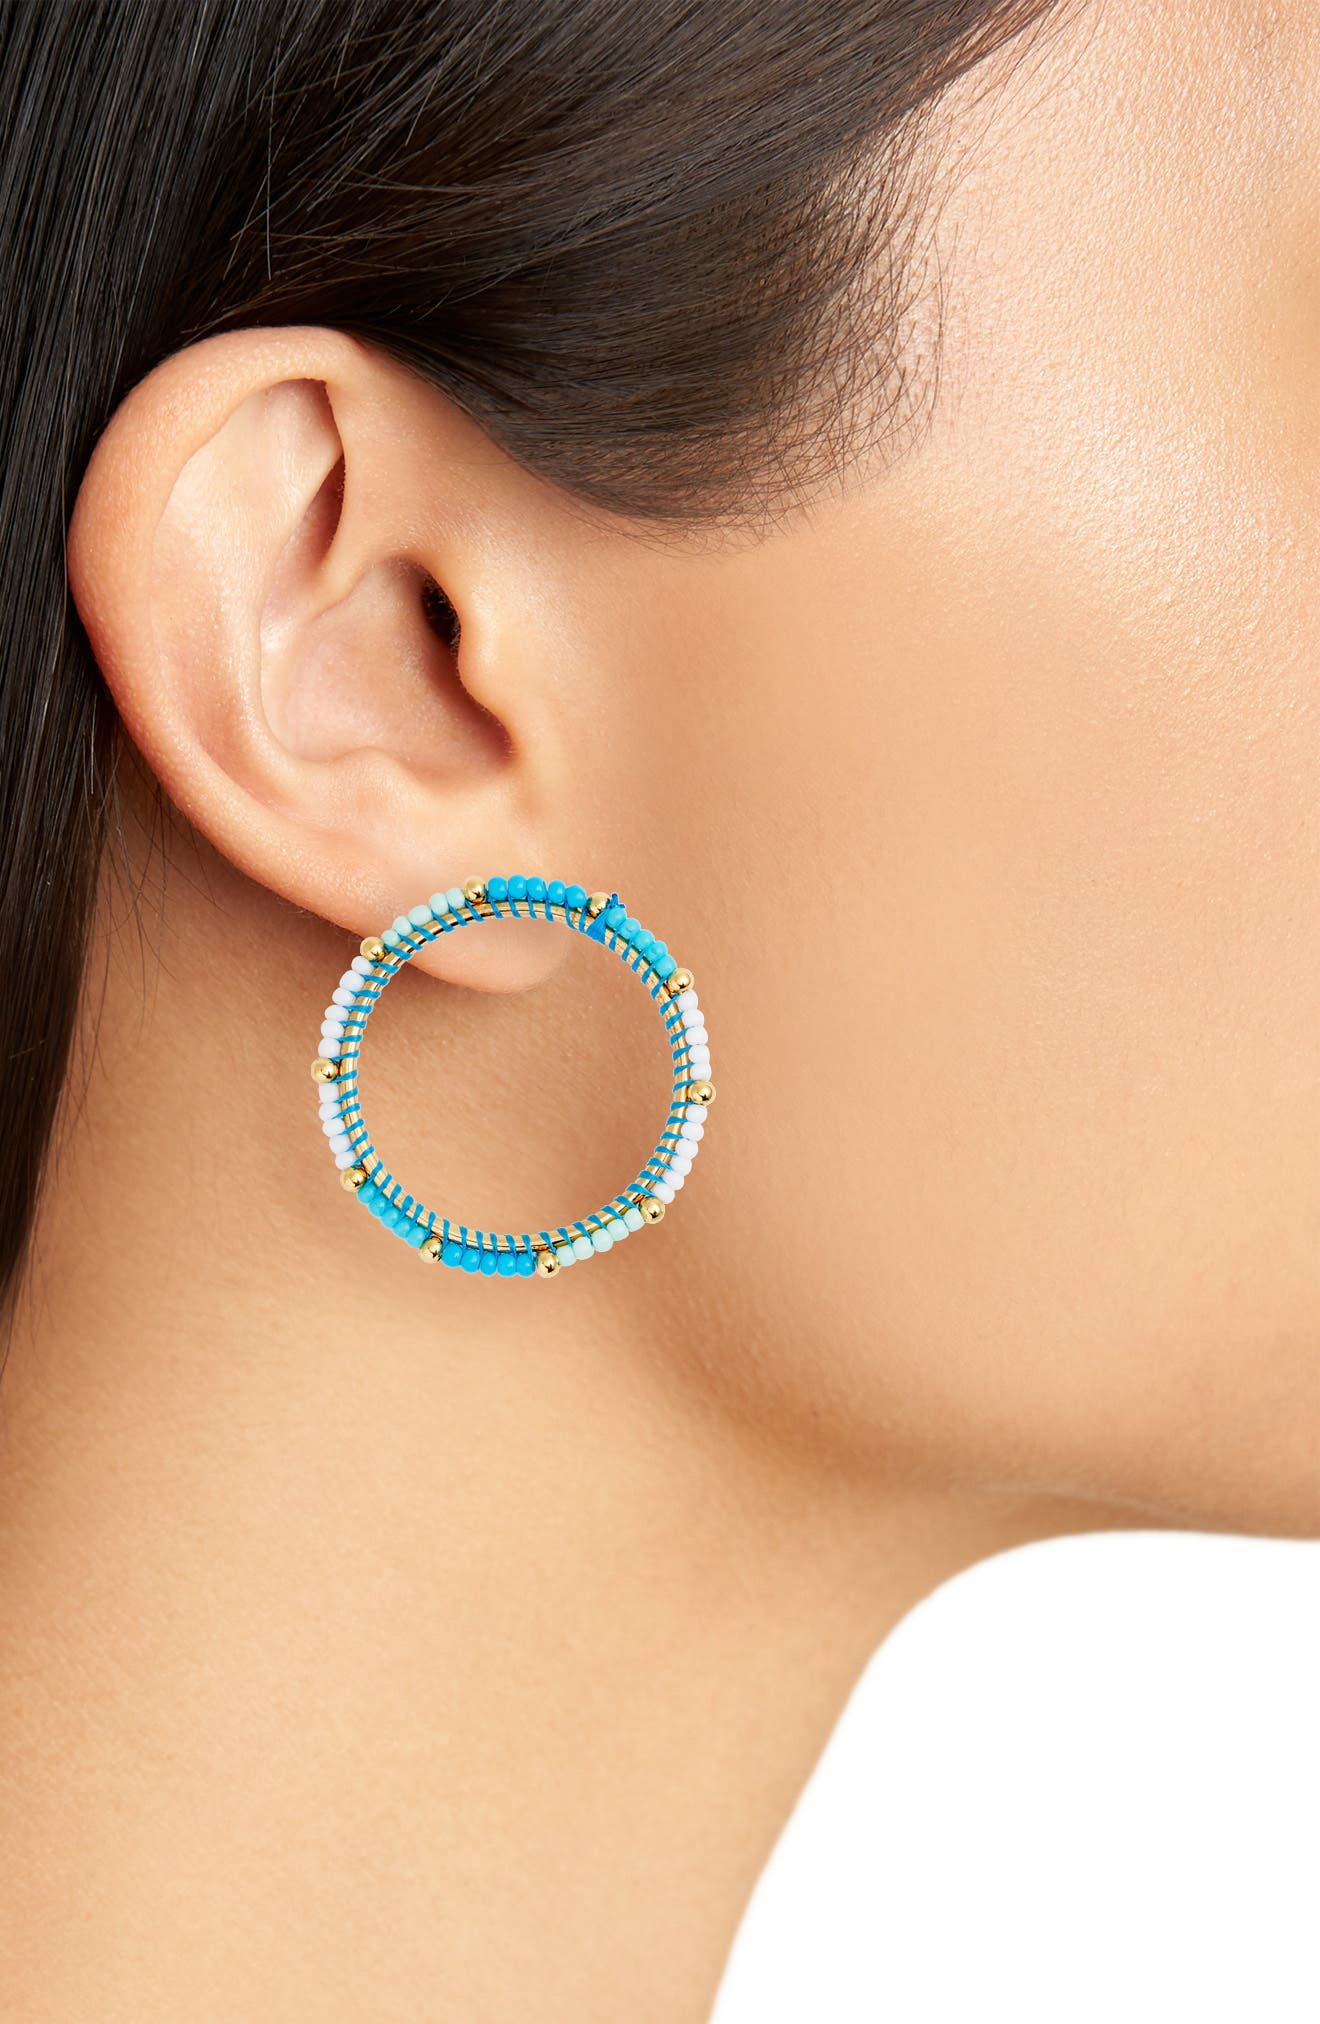 Beaded Hoop Earrings,                             Alternate thumbnail 2, color,                             Turquoise Multi